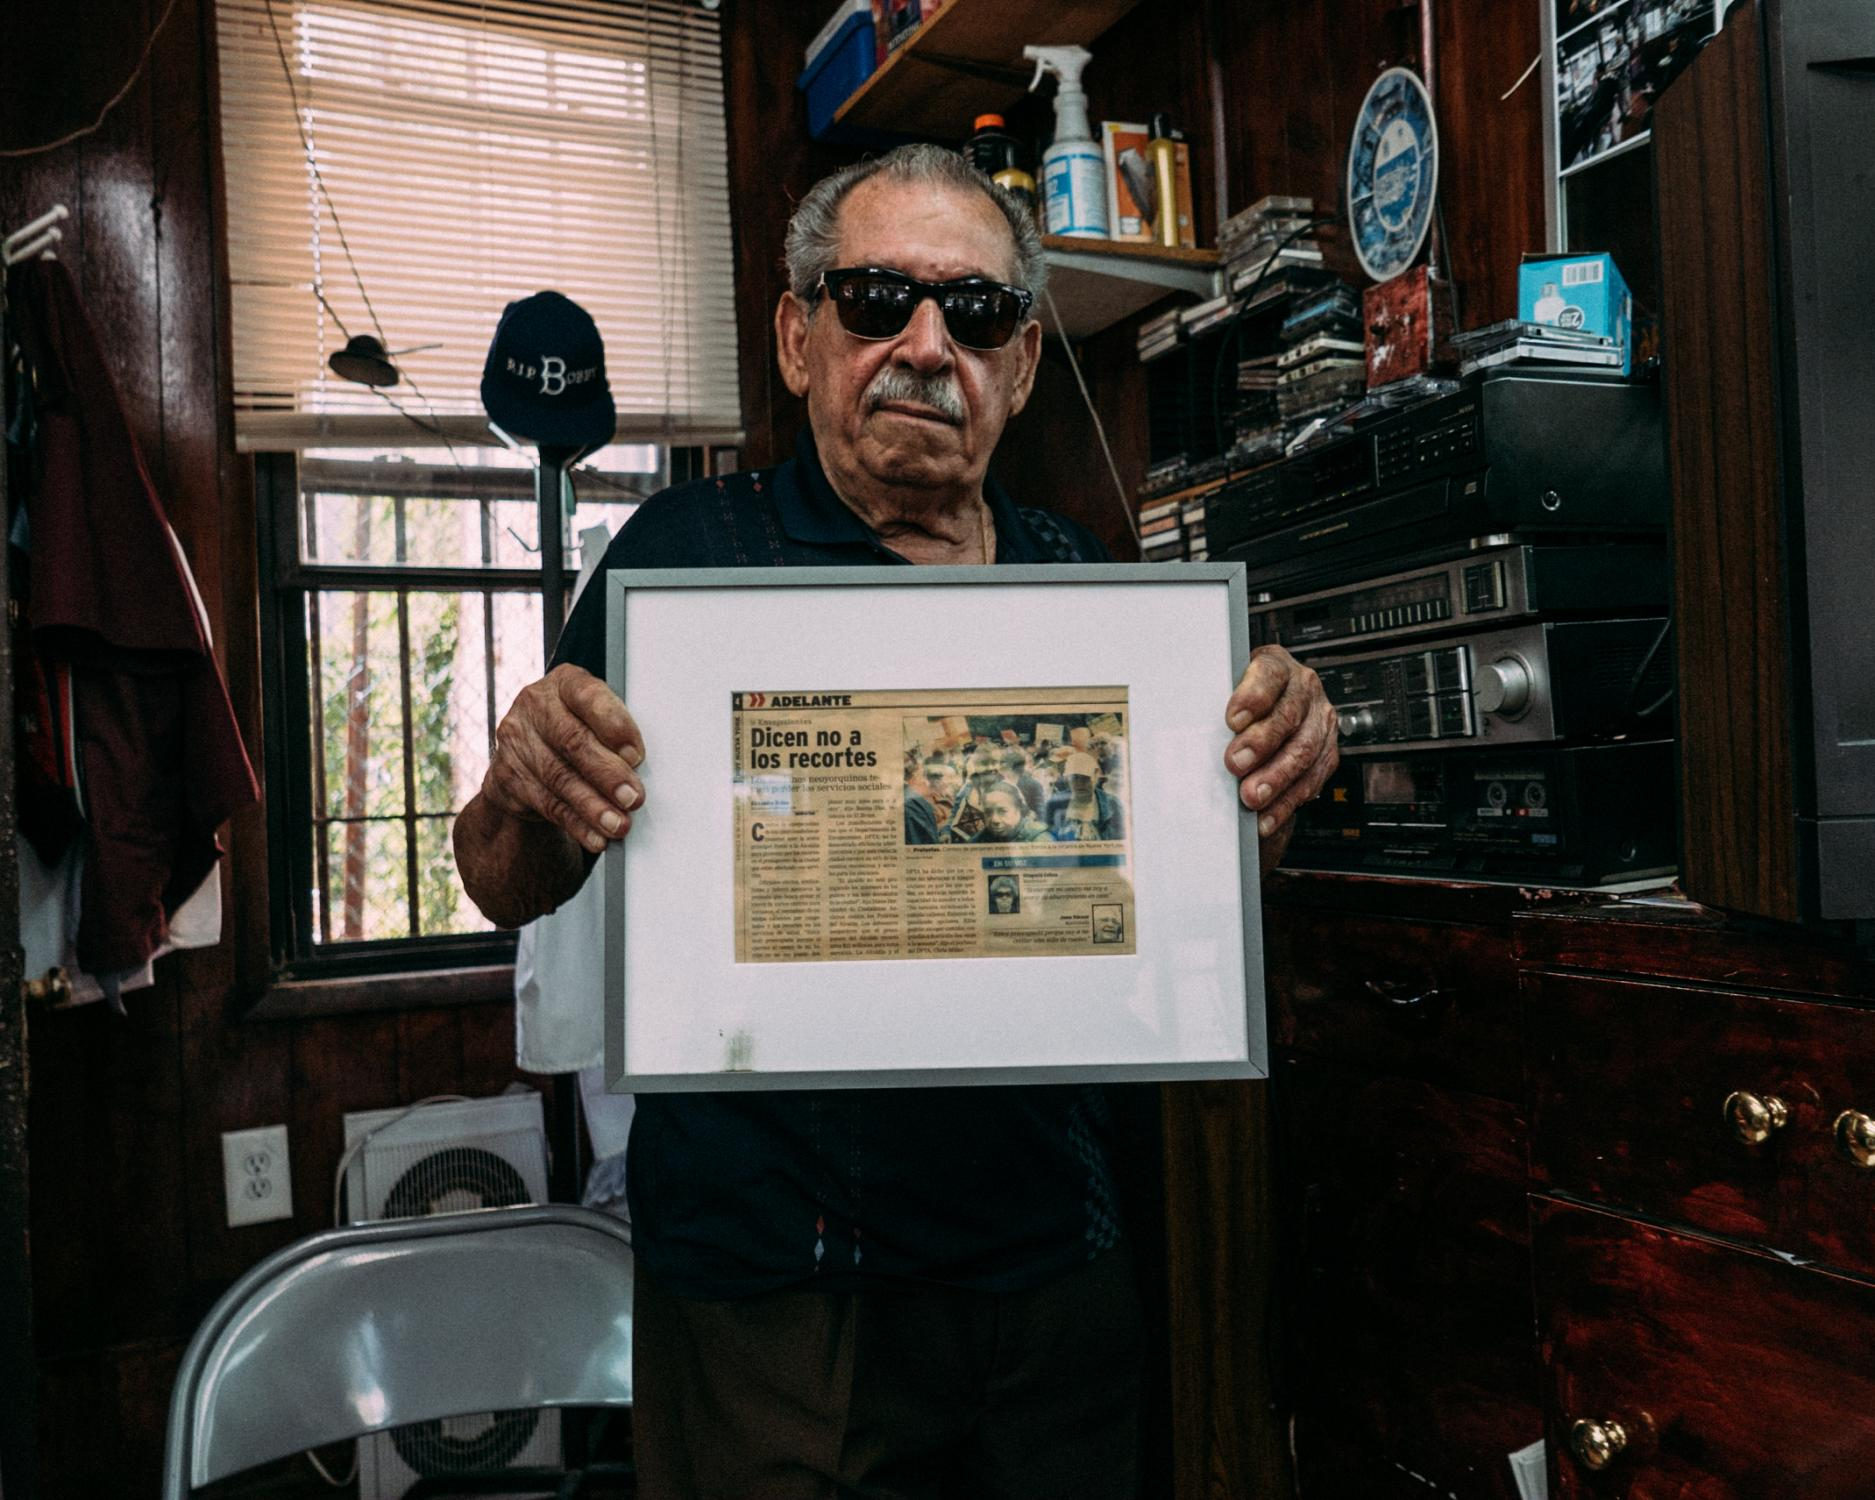 A long time friend of Eladio proudly presents an article by Alexandra Ochoa originally printed in the Latino publication Hoy Nueva York that displays a photograph featuring Eladio fighting for social services for elderly New Yorkers.